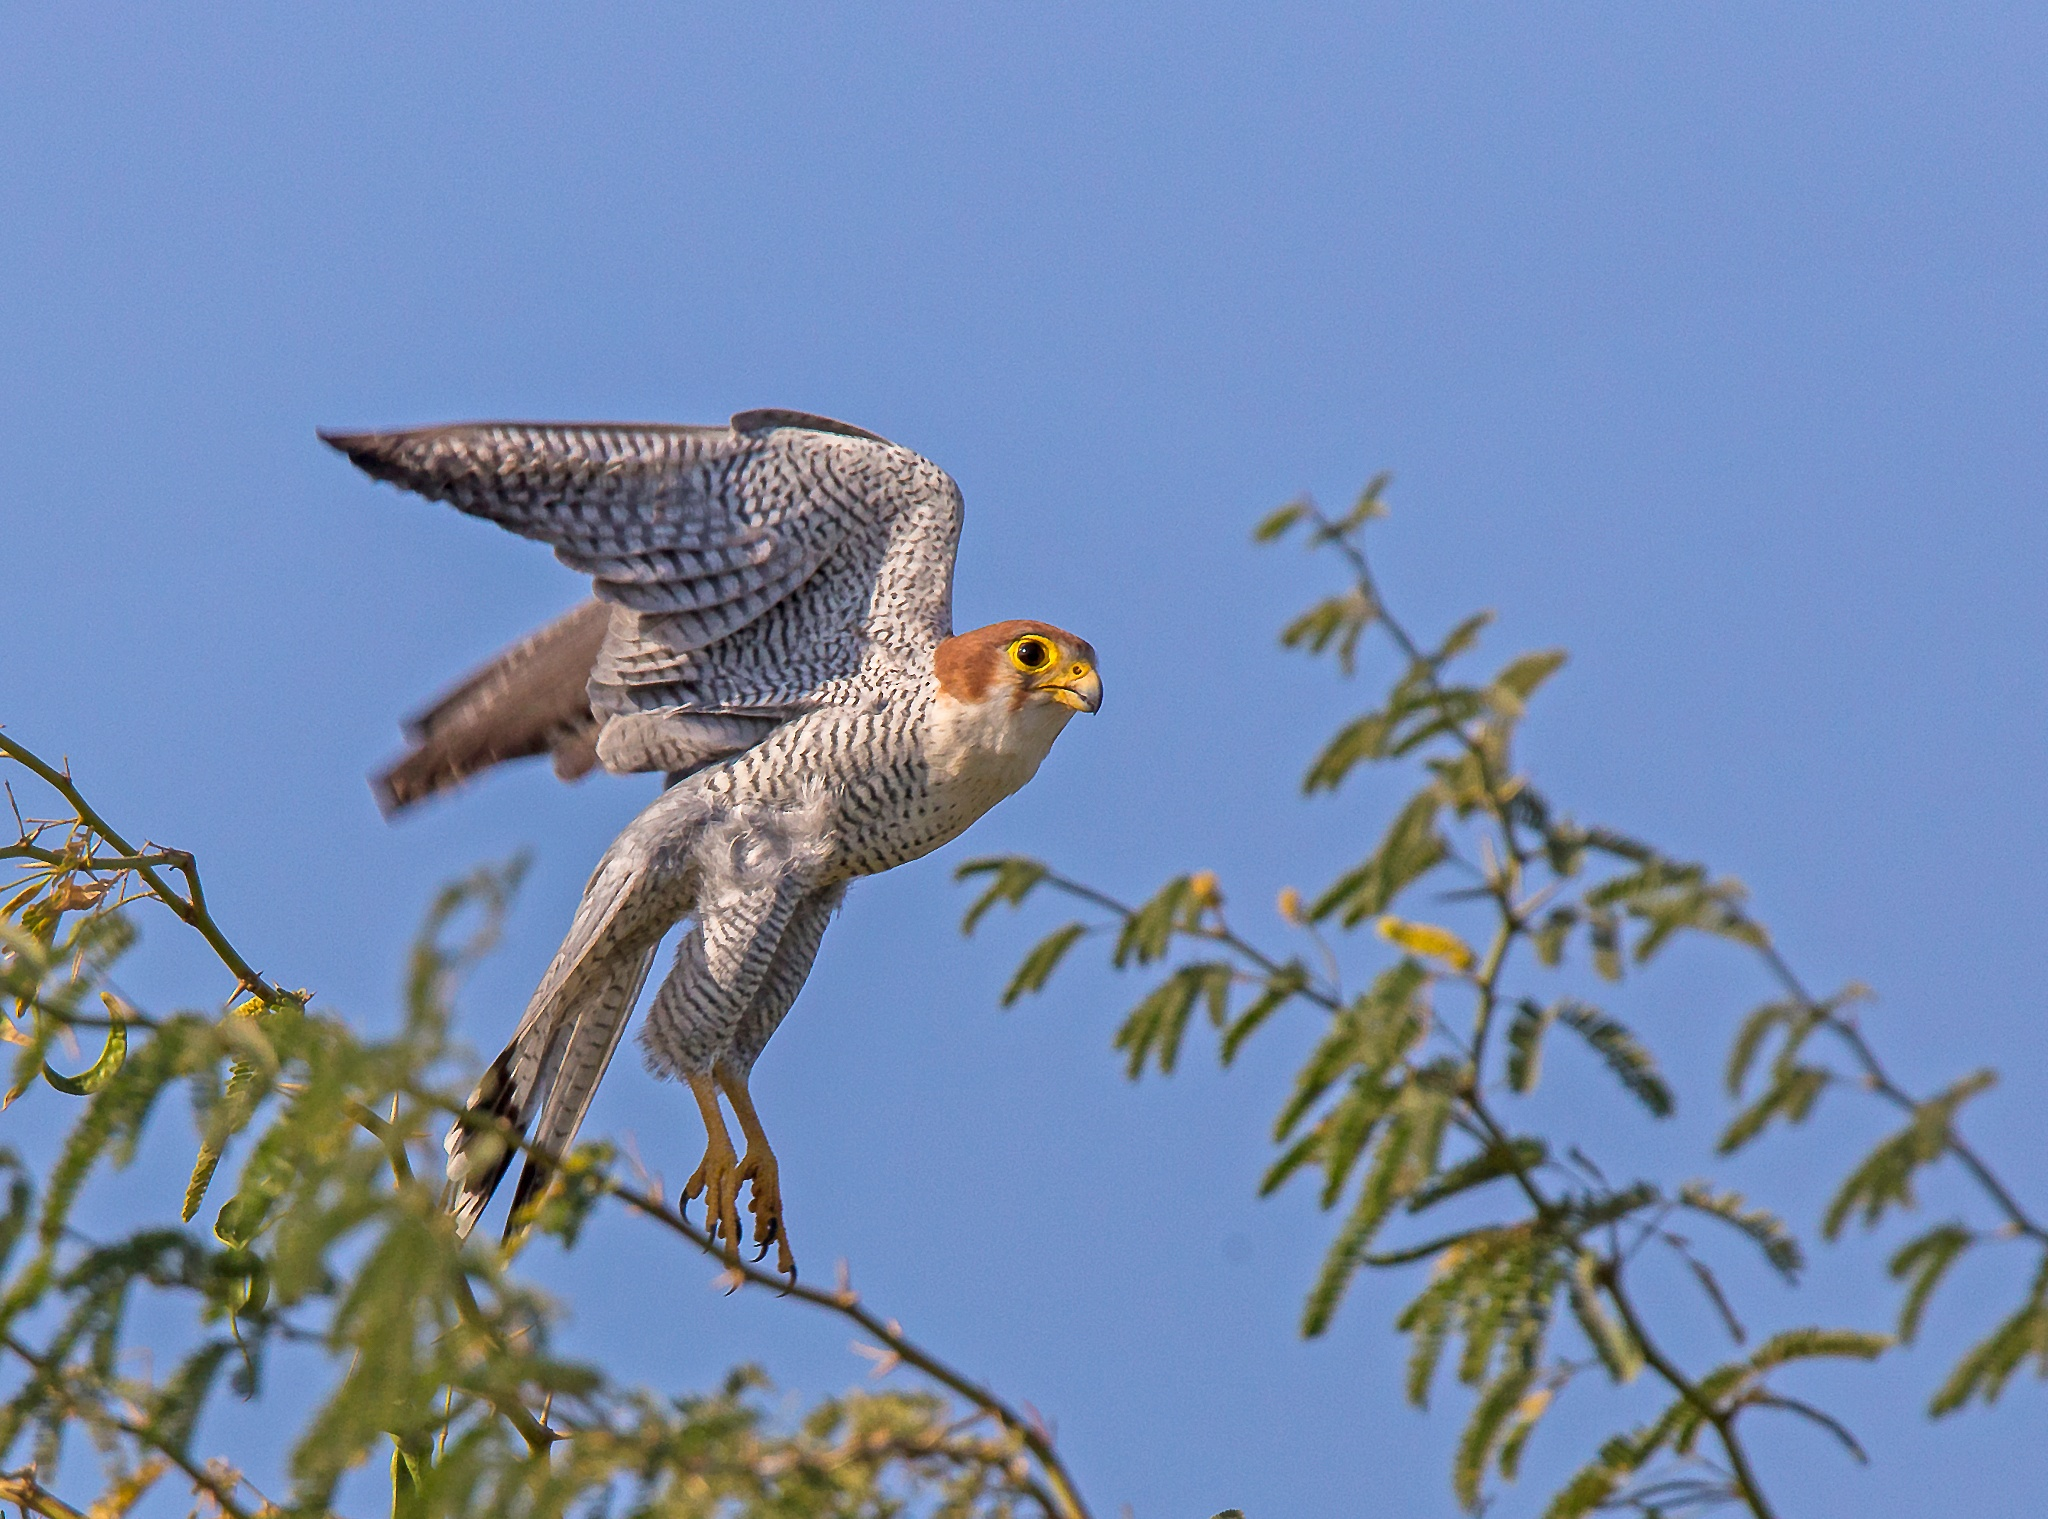 Red-necked Falcon take-off by DrSudhir Hasamnis